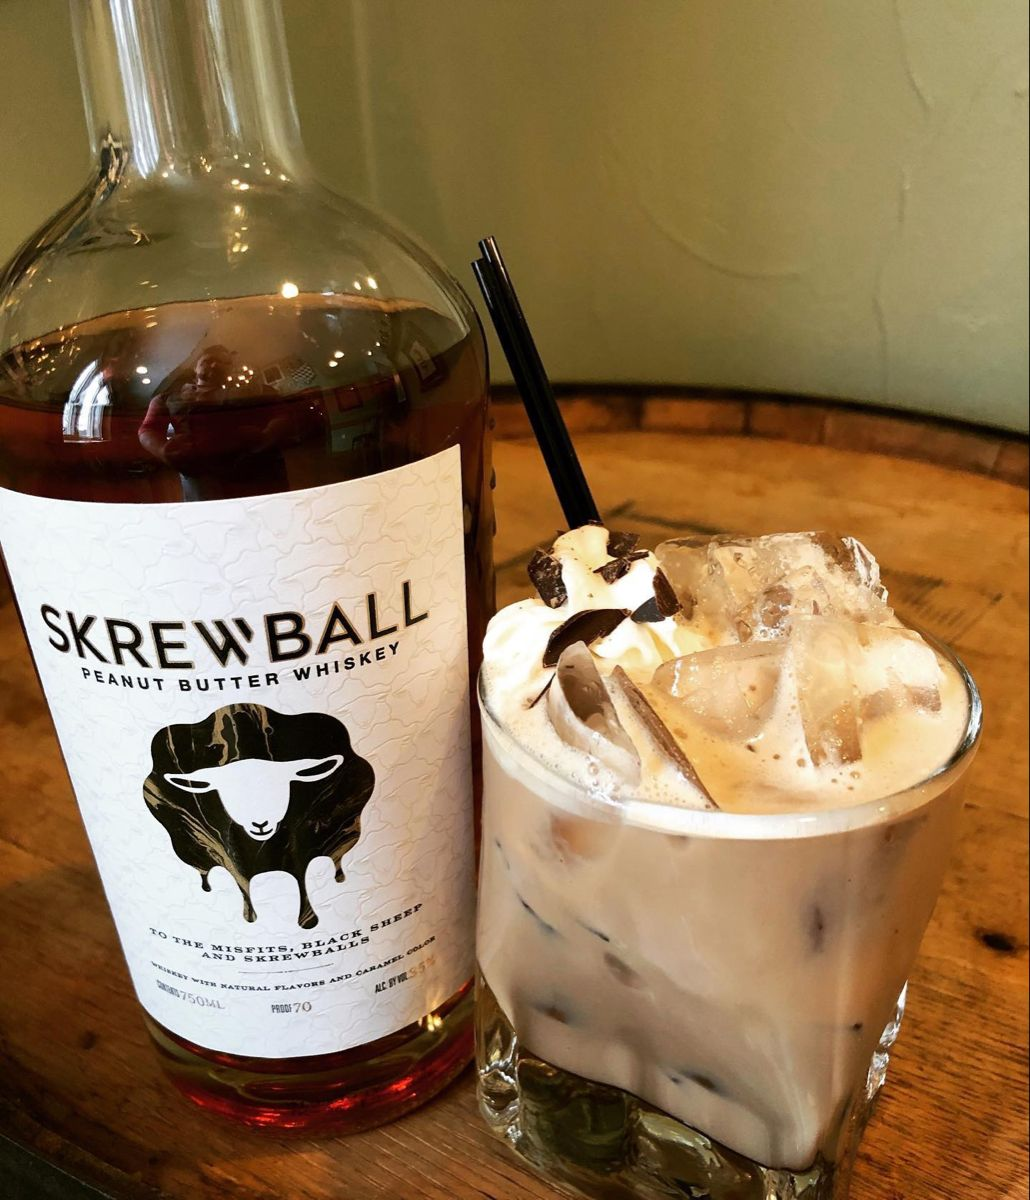 Reese's Cup: Made With Skrewball Peanut Butter Whiskey